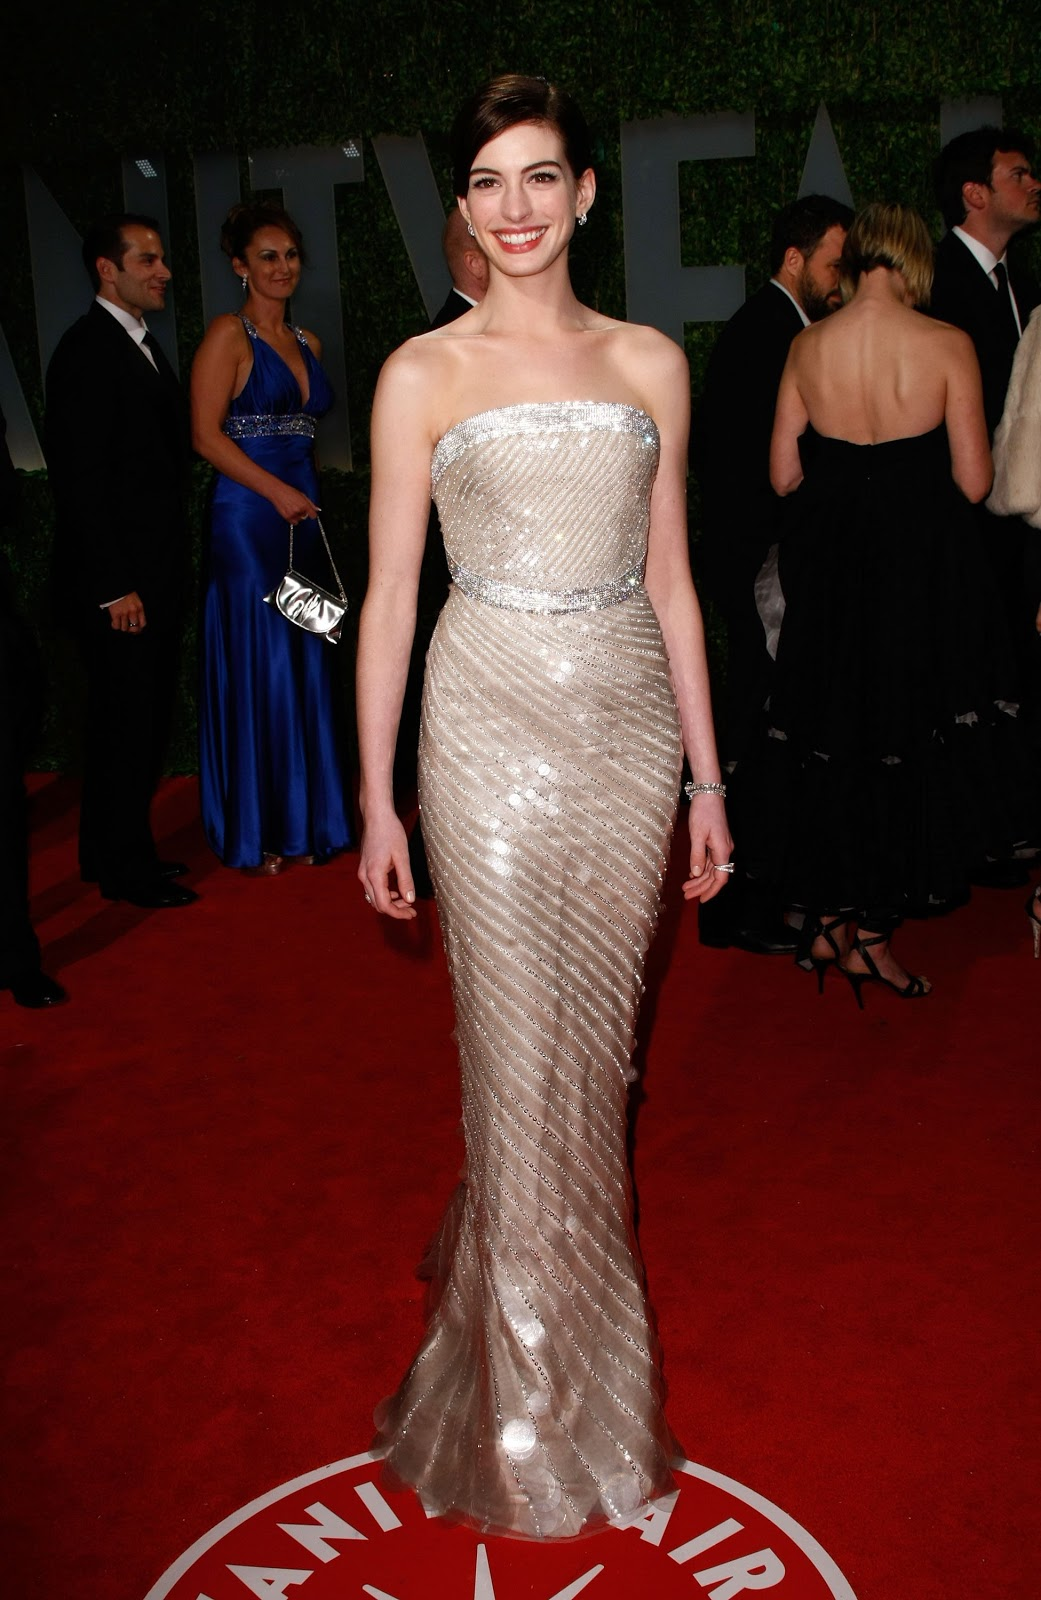 http://1.bp.blogspot.com/-xdNLWcjjo2A/UOT_Ouzje8I/AAAAAAAAnDA/8m-UePUT9sg/s1600/anne_hathaway_arrives_at_the_2009_vanity_fair_oscar_party-03_123_1015lo.jpeg